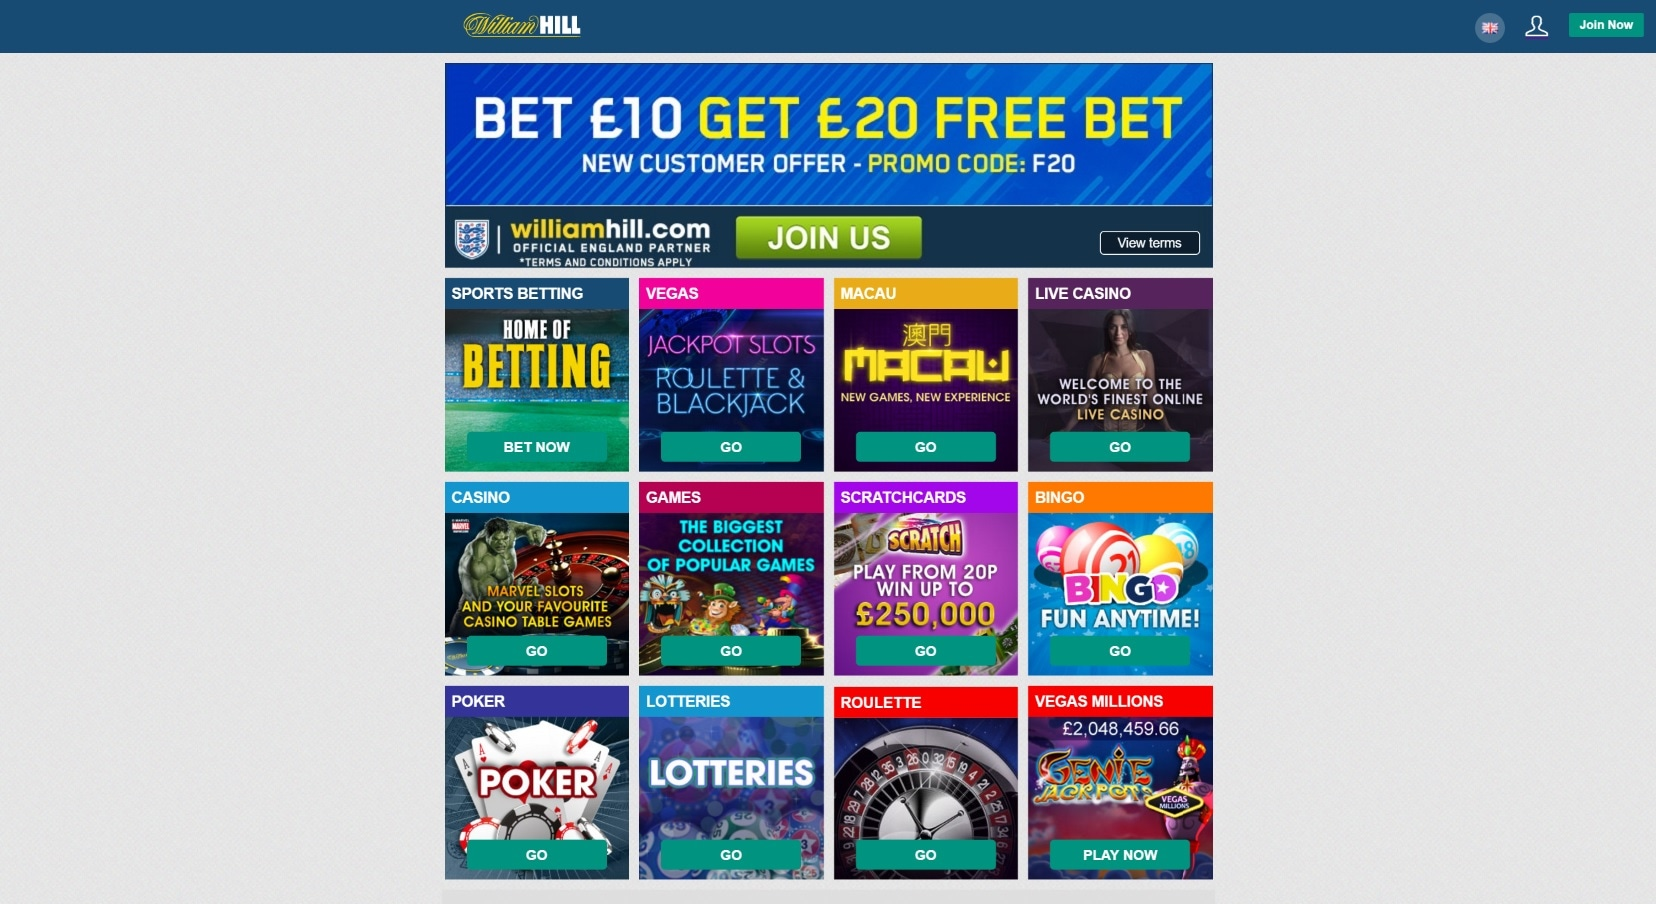 paypal casino site william hill overview